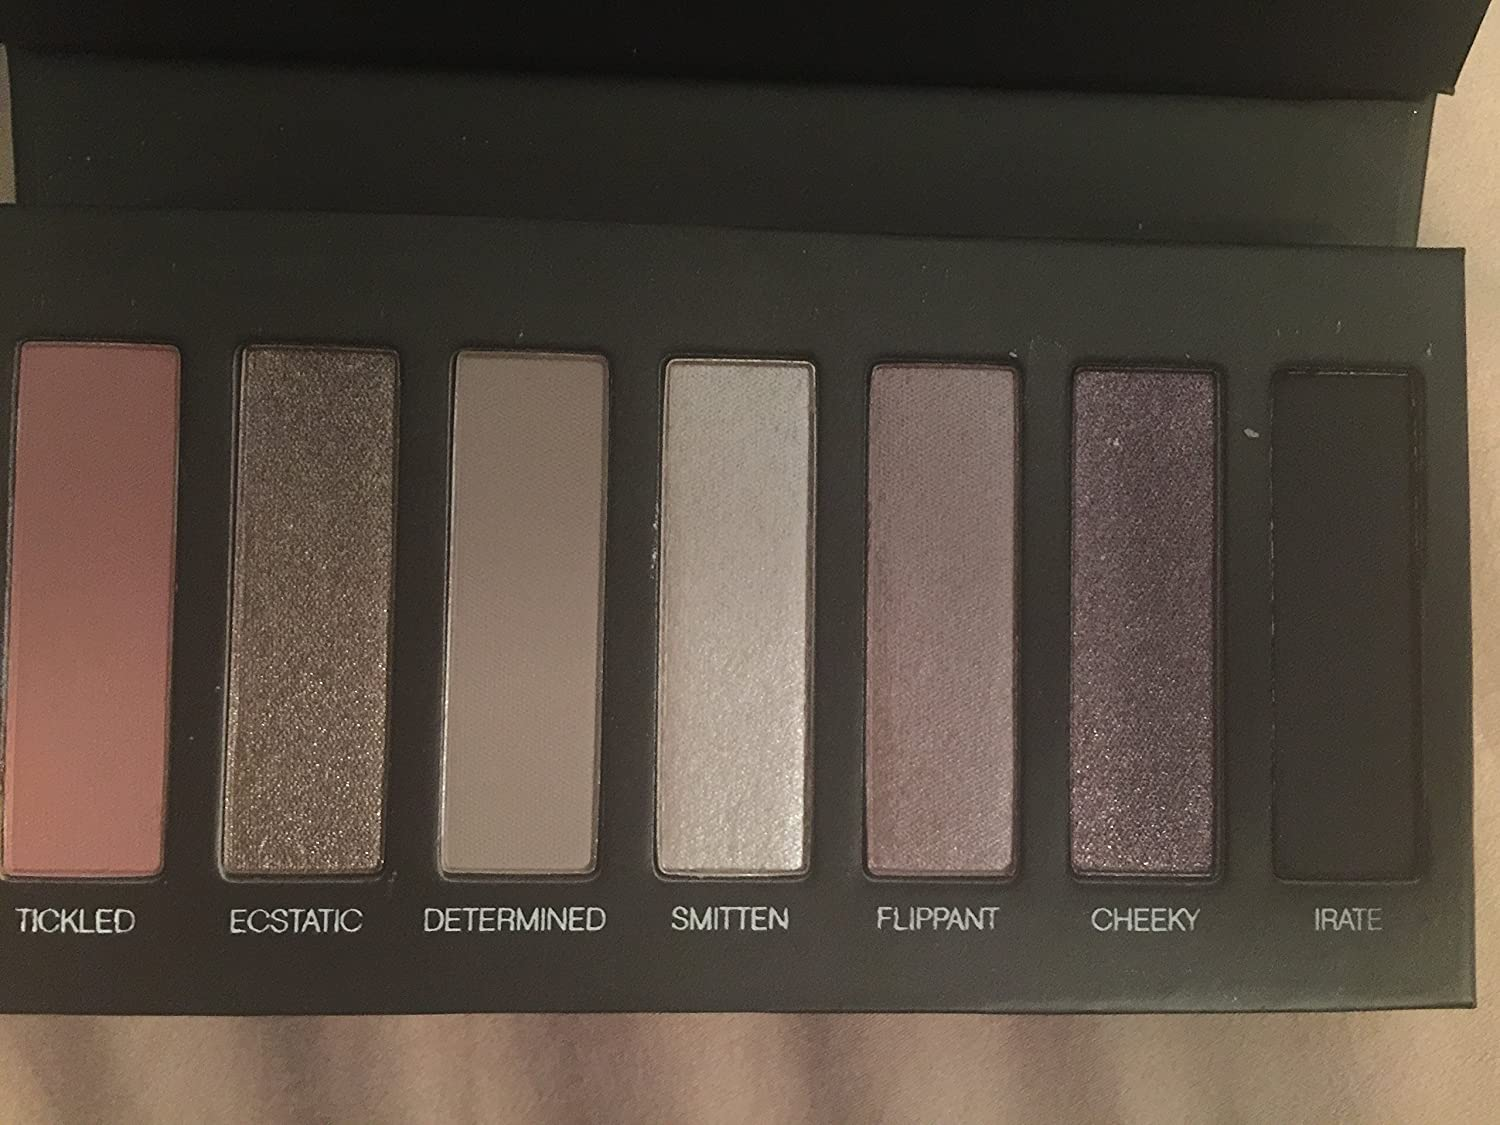 Younique Moodstruck Addiction Shadow Palette 3 Cool With Shades Of Pink And Purple